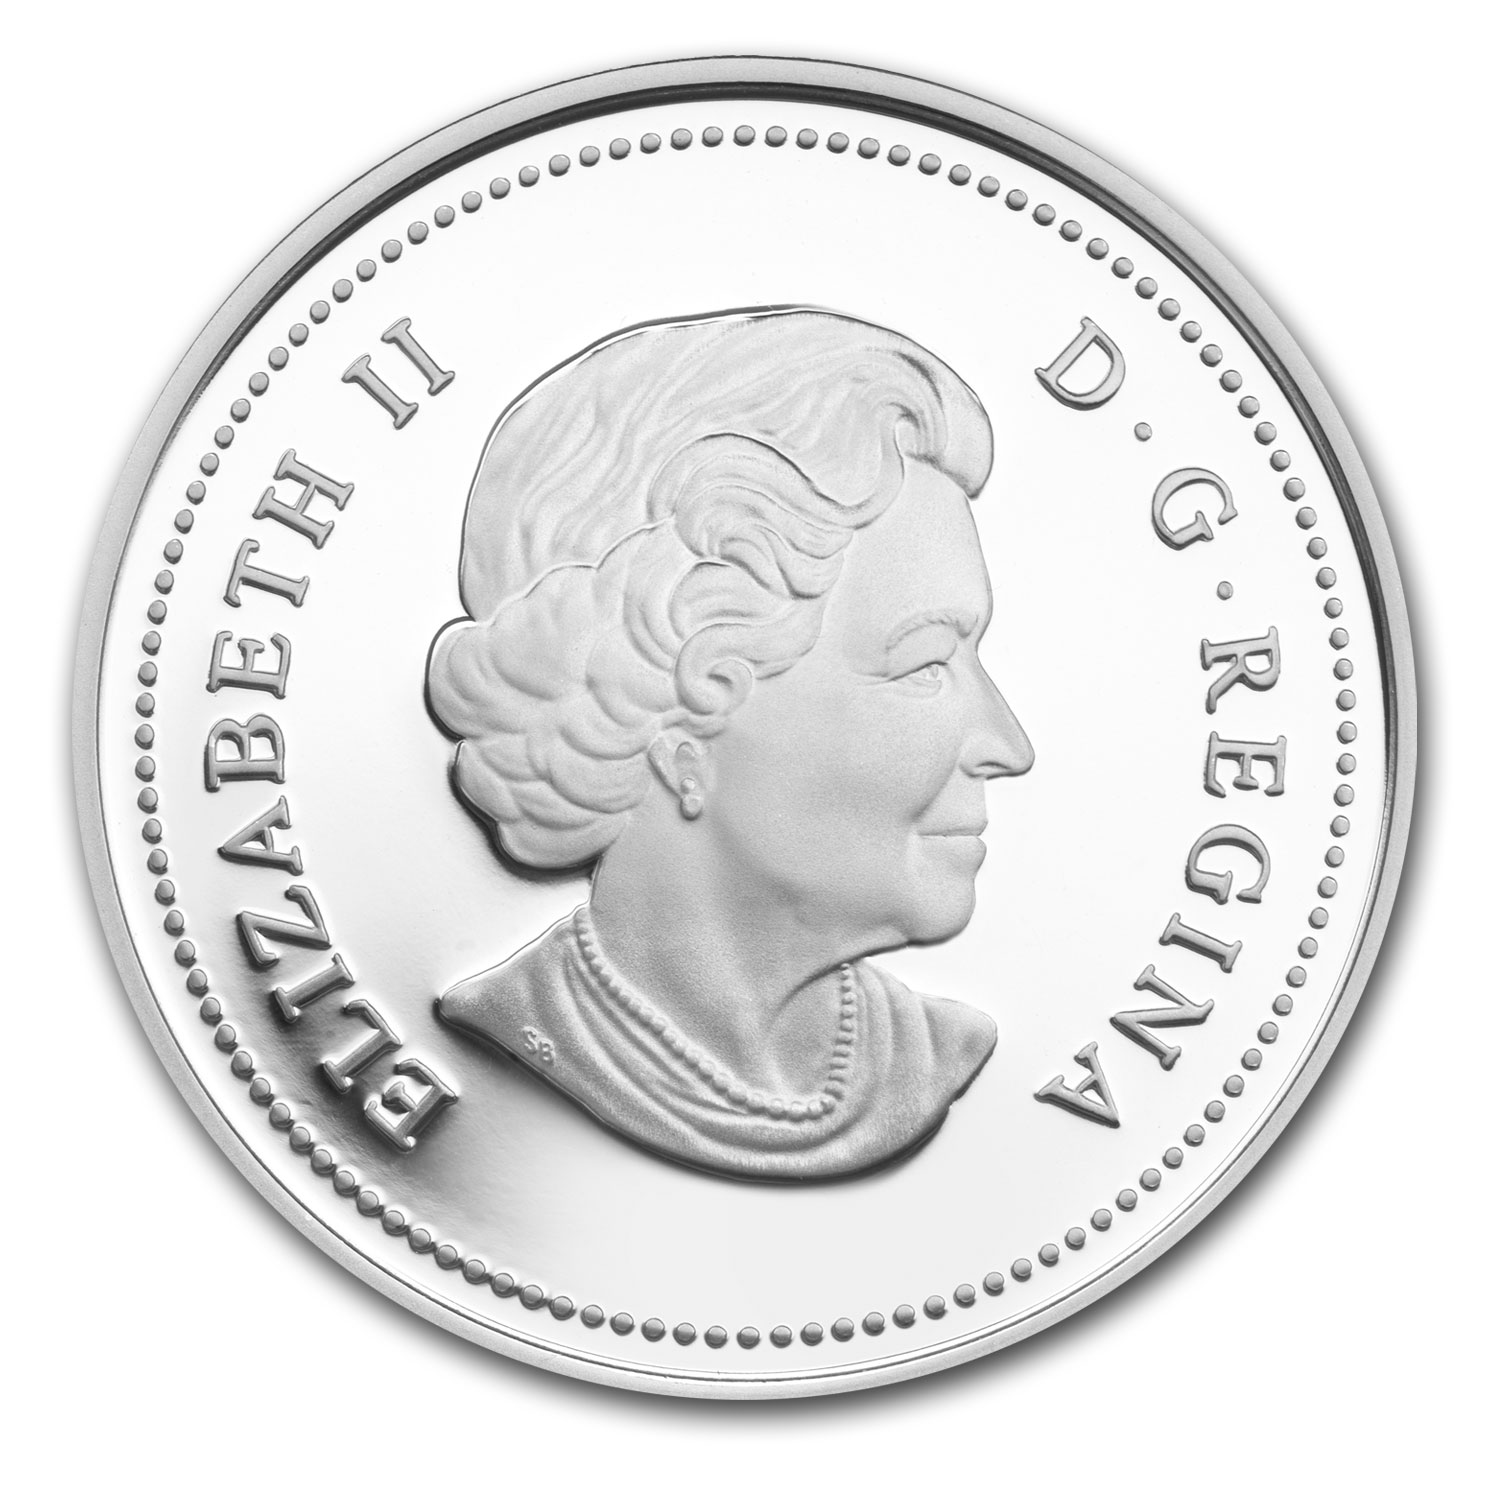 2013 Silver Canadian $5 Tradition of Hunting - Bison